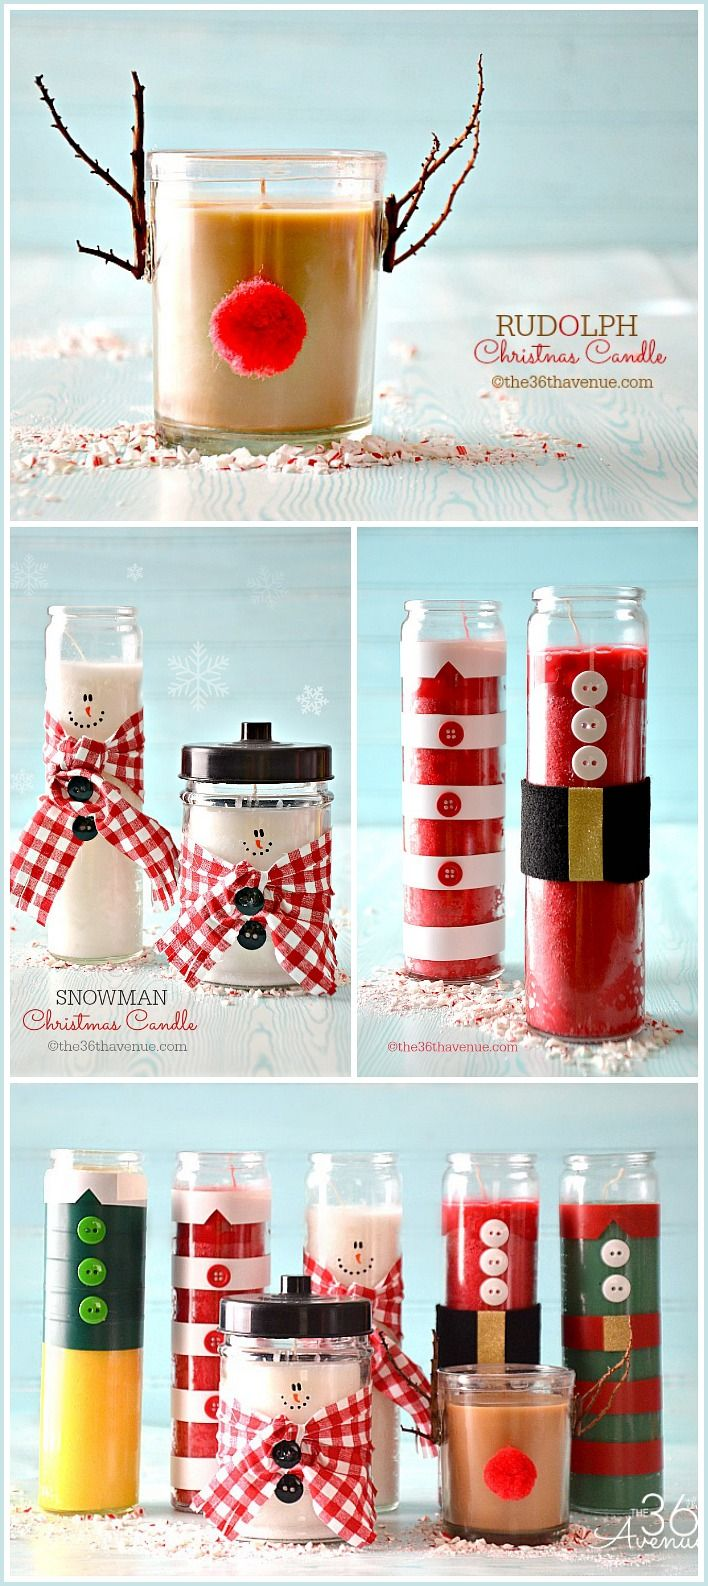 Top 40 most pinteresting christmas candle decoration ideas source solutioingenieria Gallery